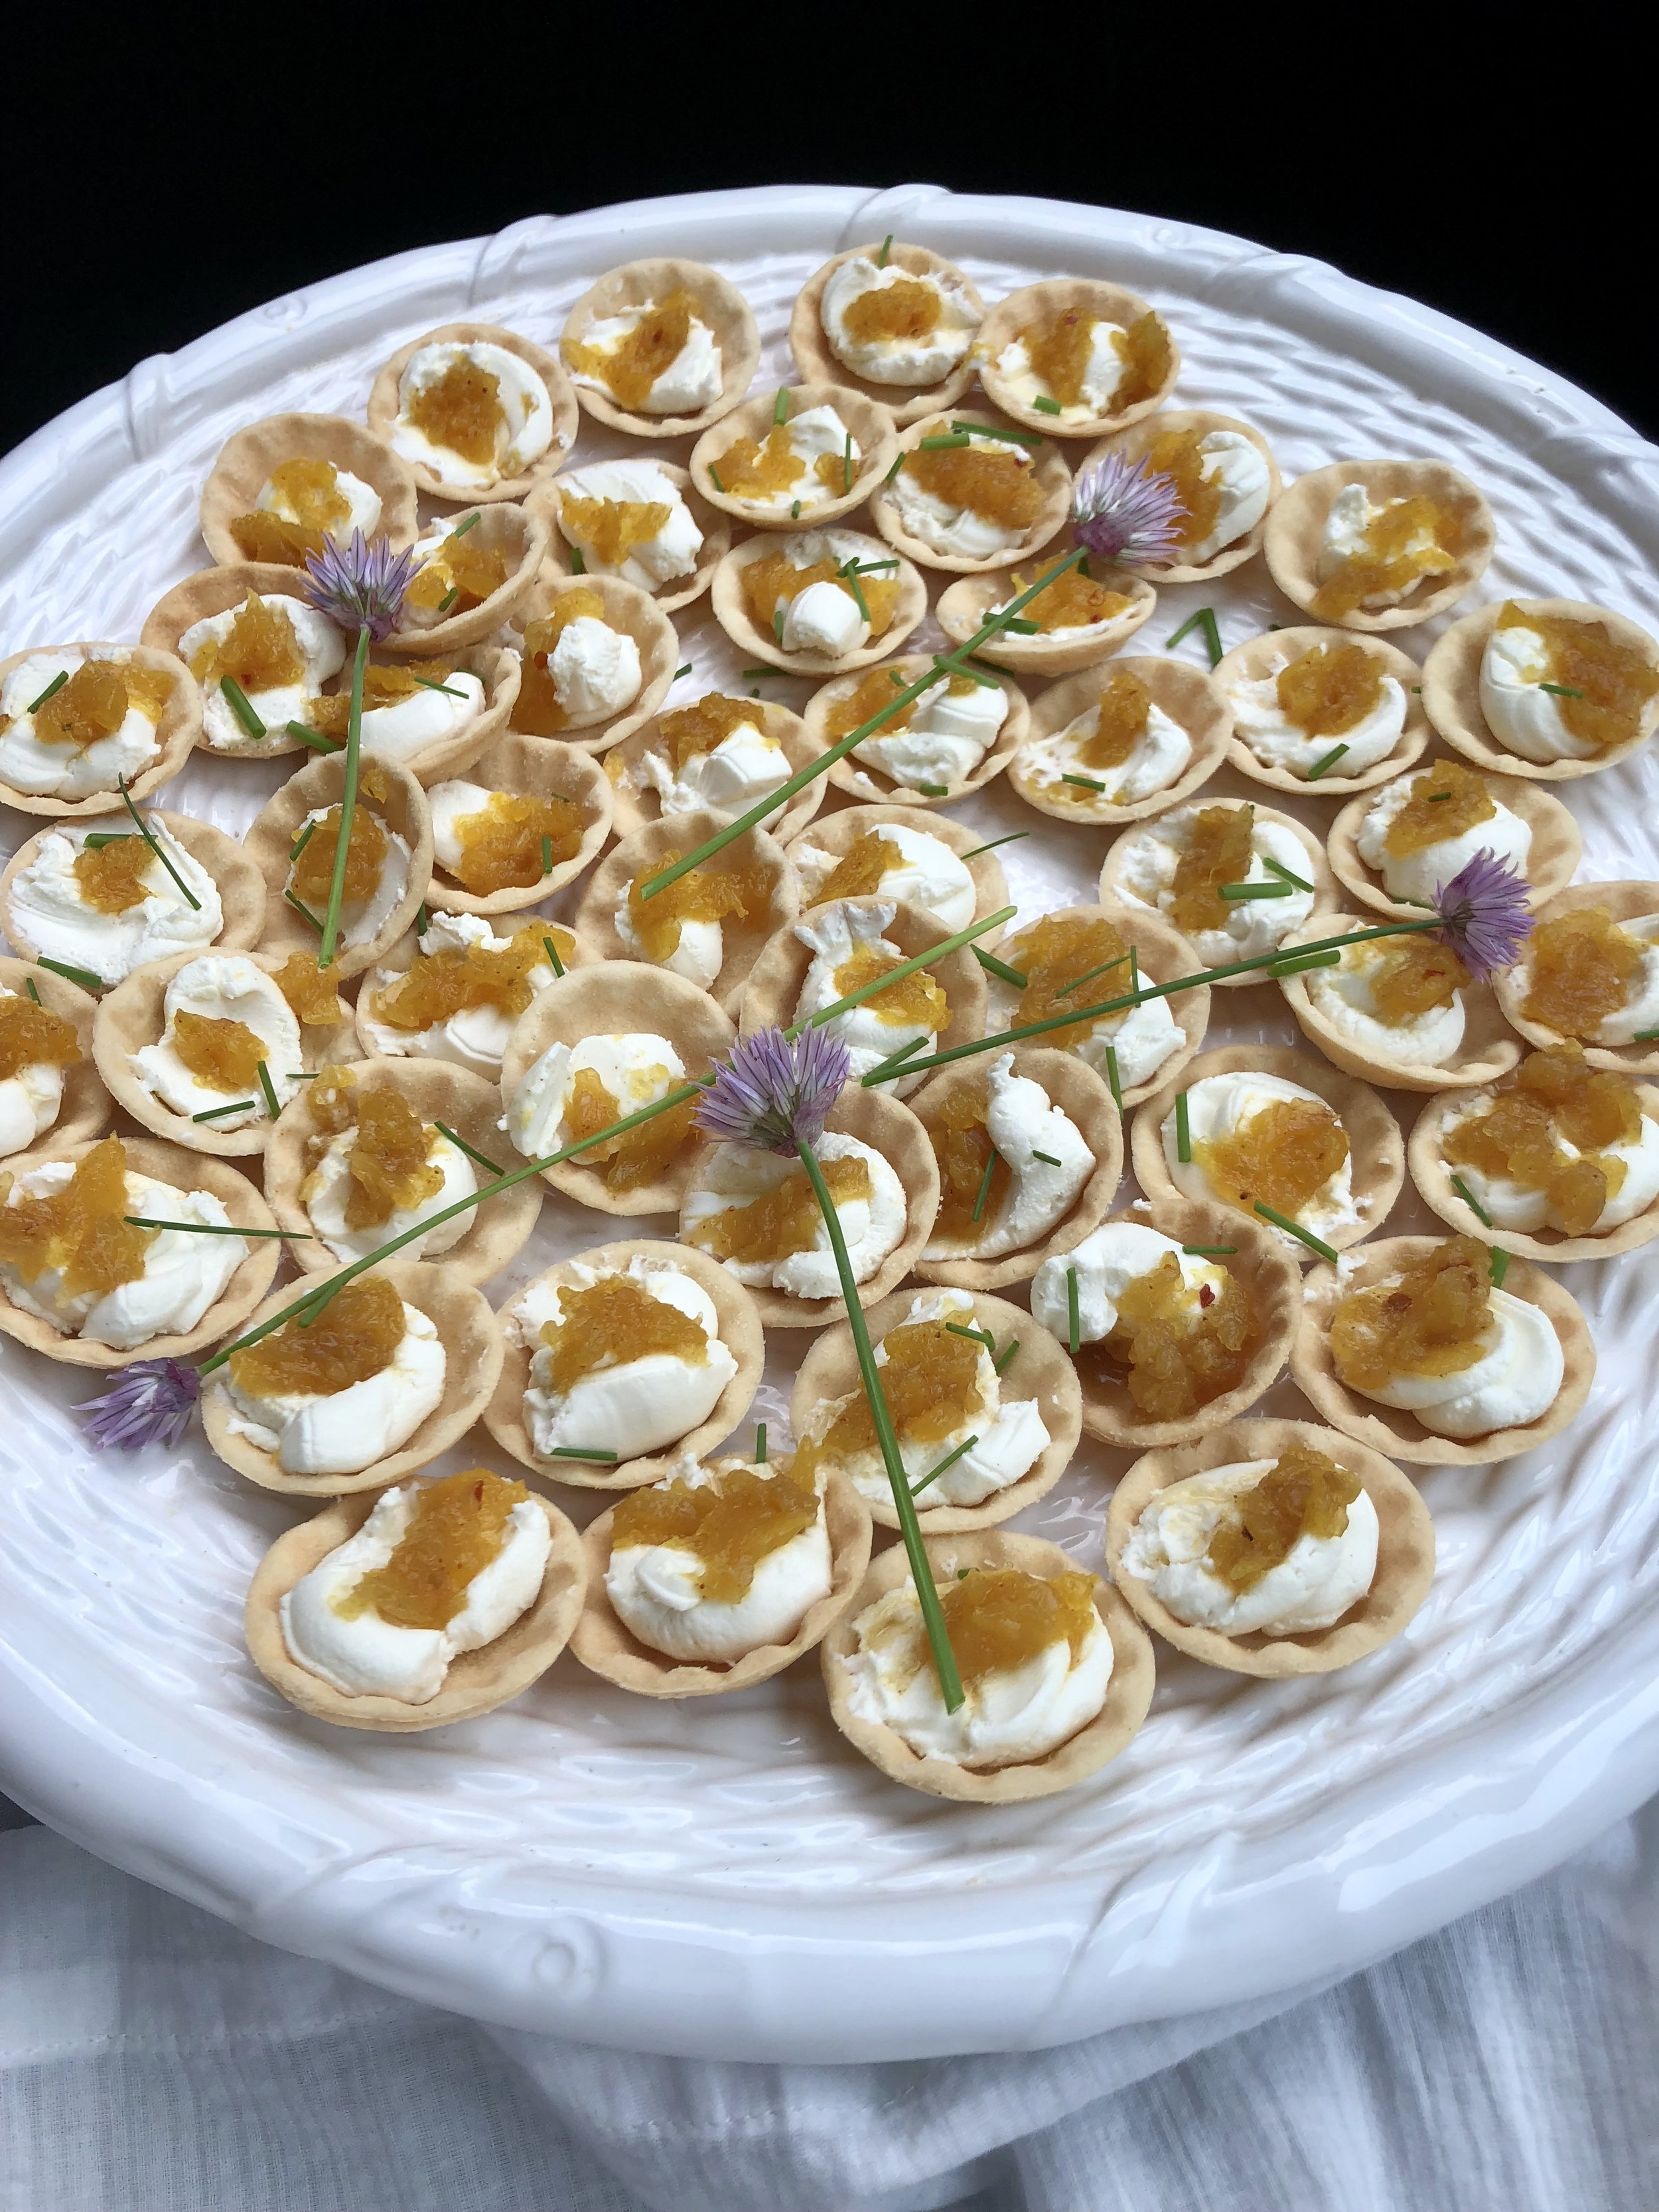 A delicious and quick entertaining appetizer.